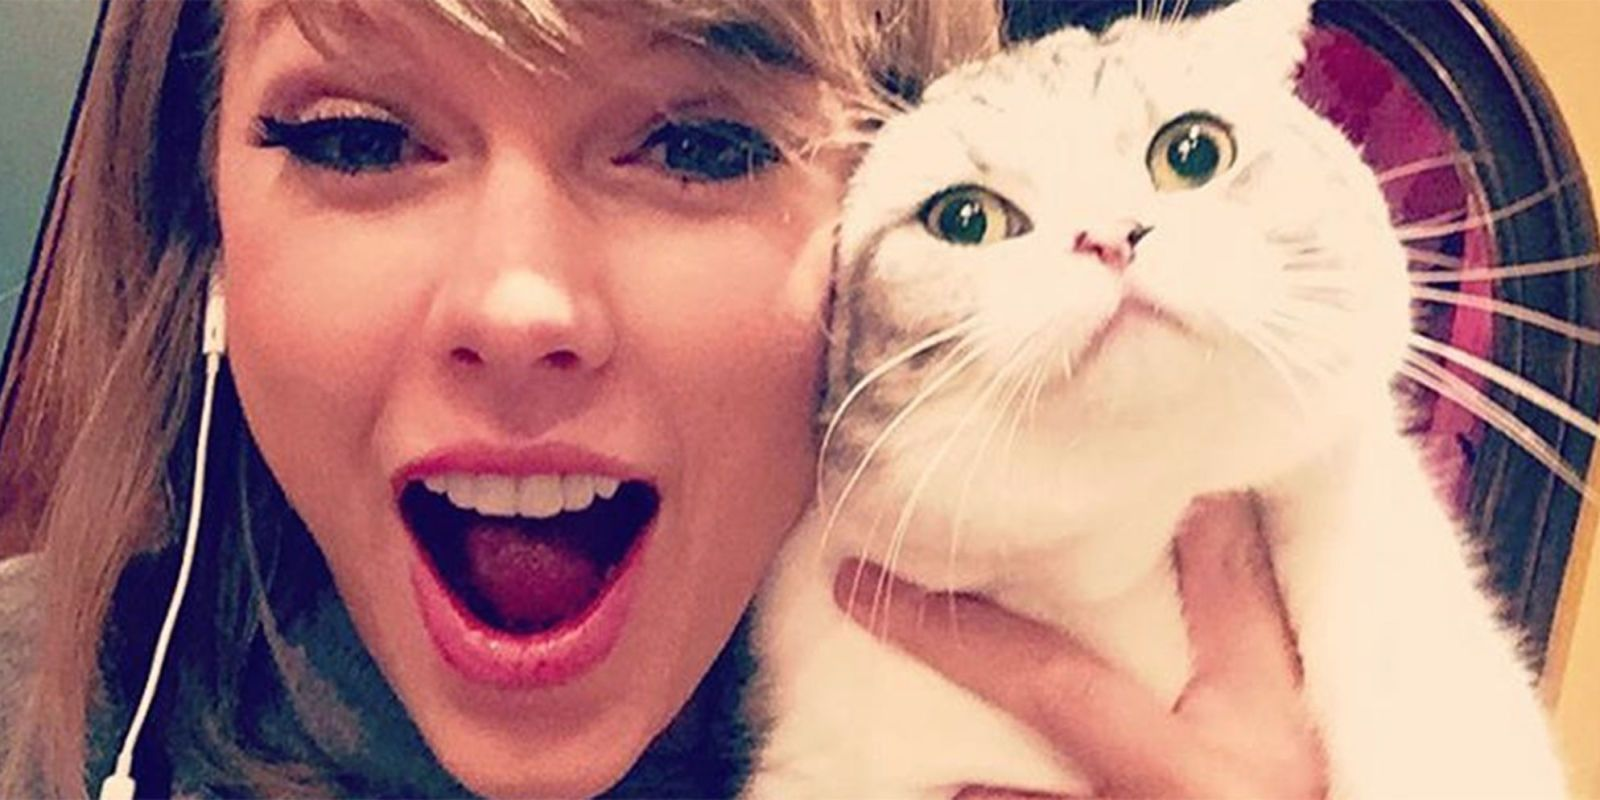 Taylor Swift S Cat Looks So Cute Prepping For The Reputation Tour Choreography